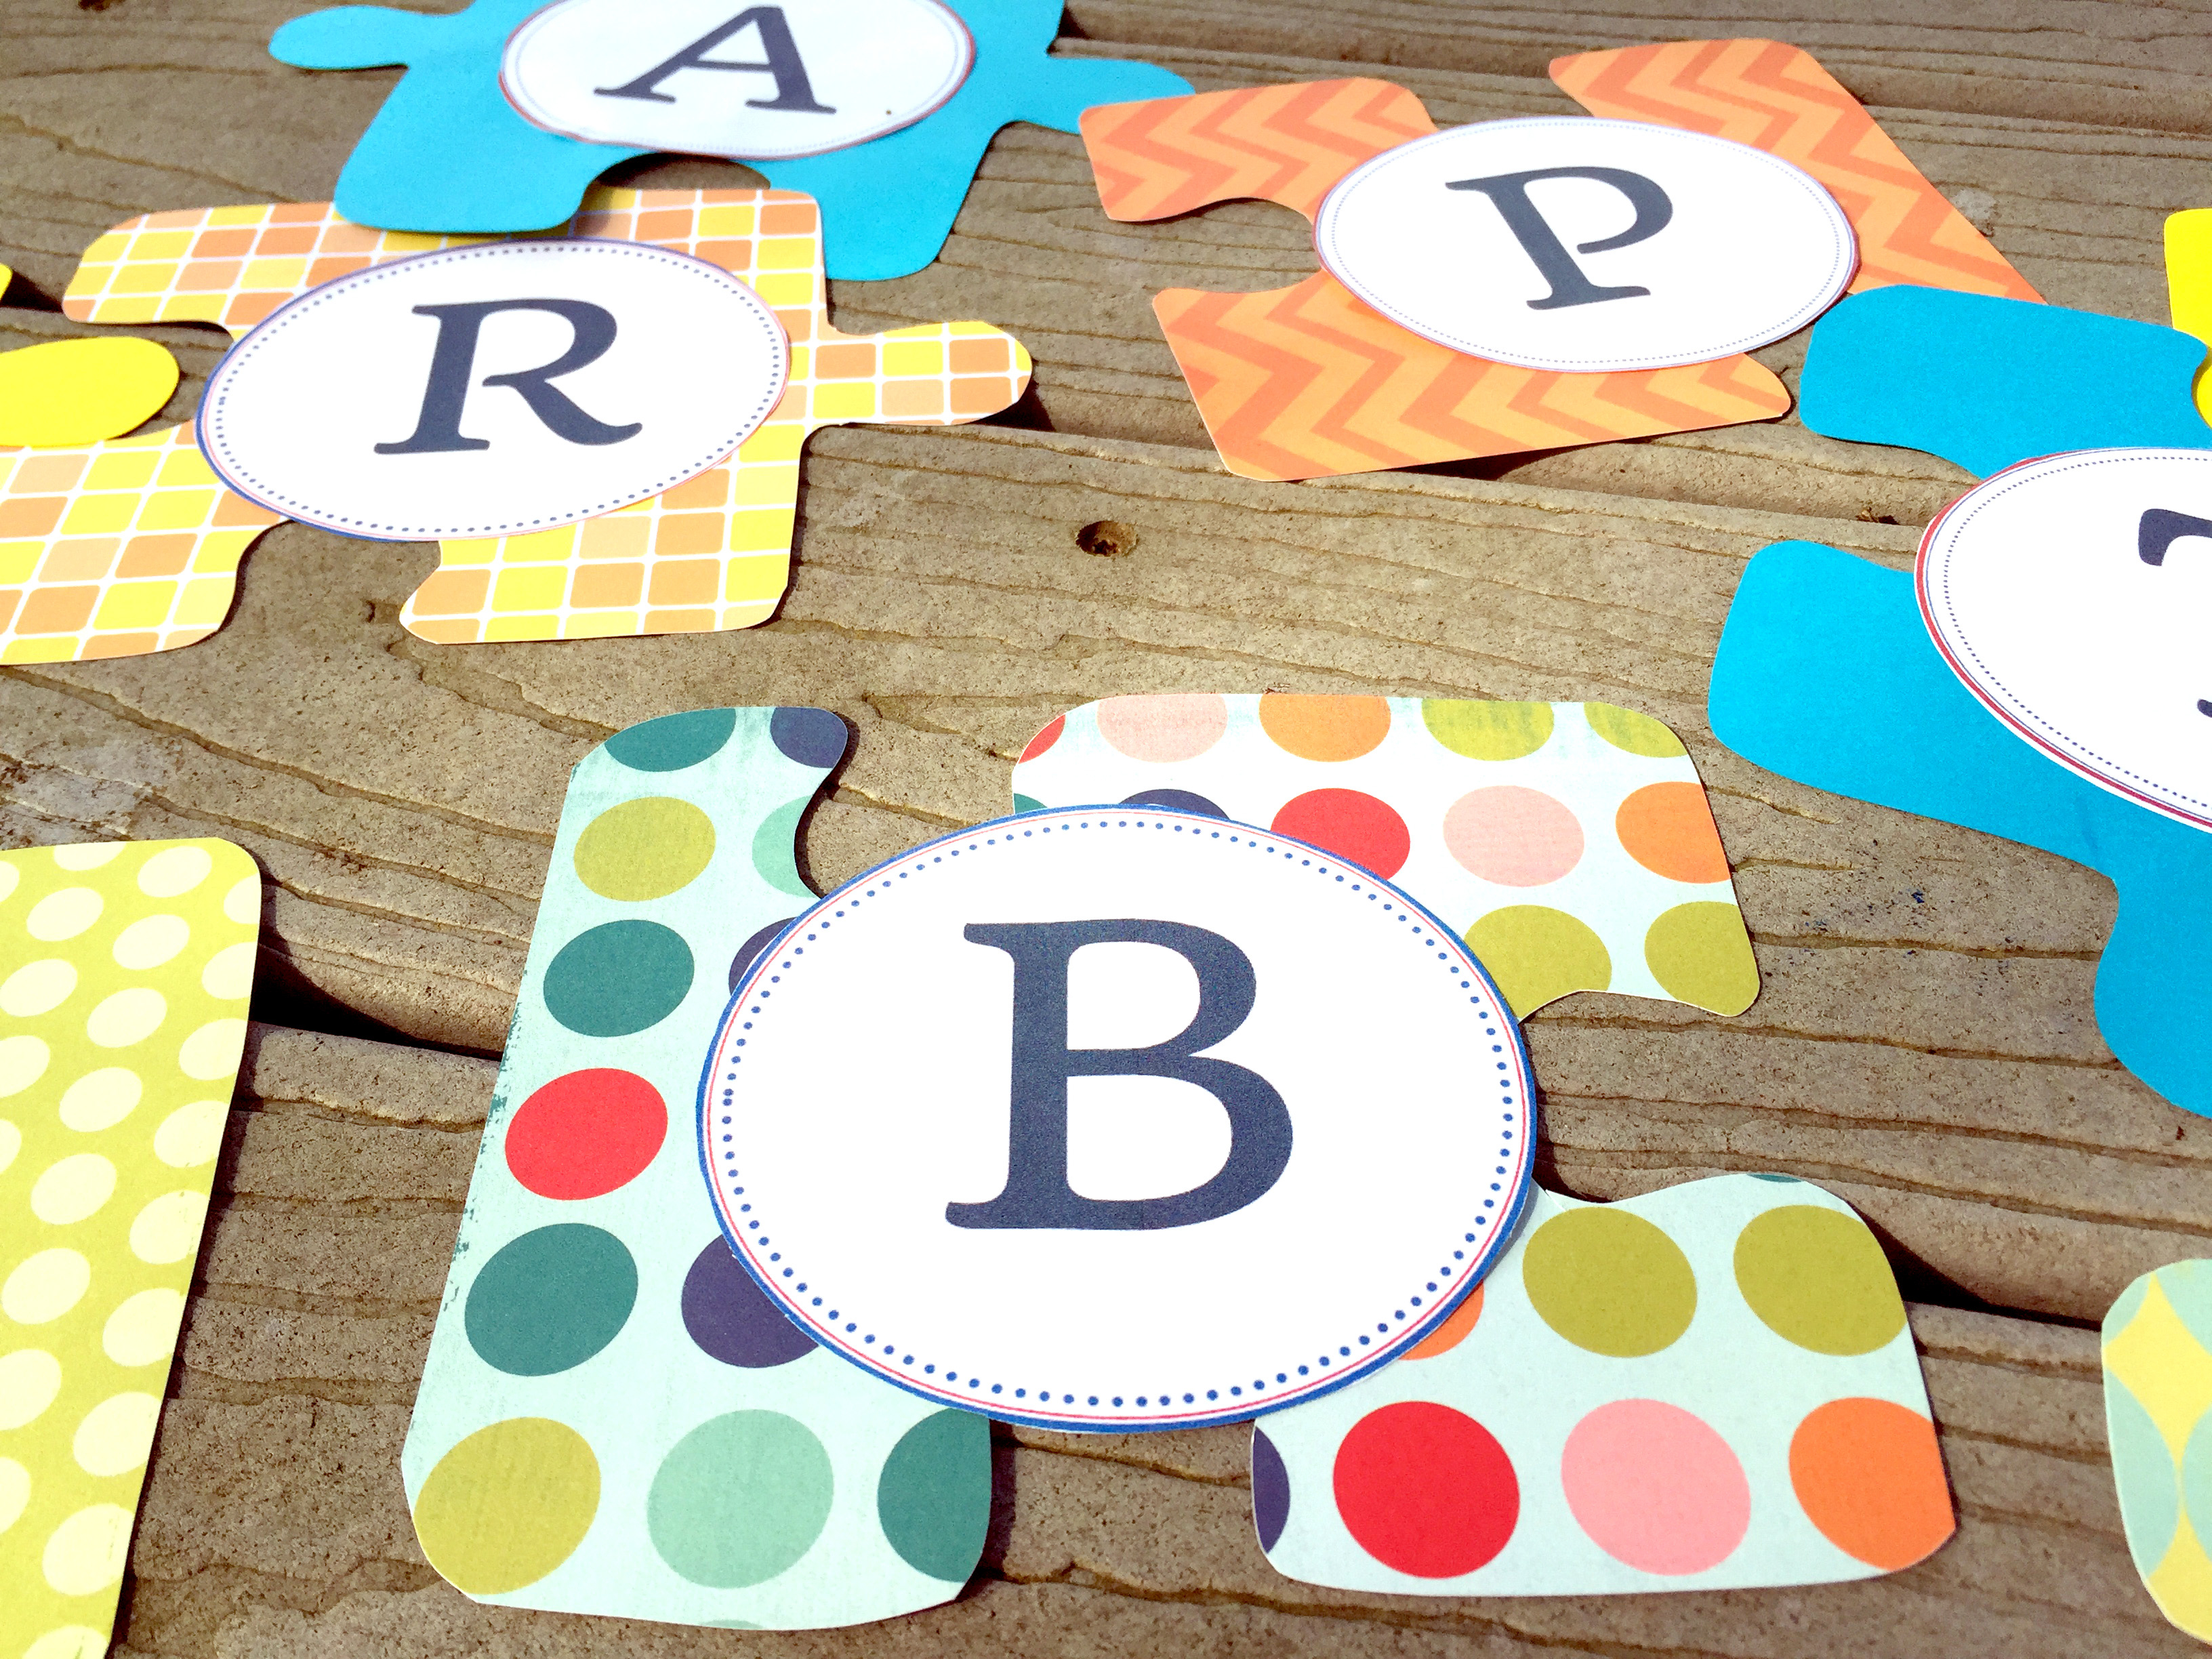 Free Printable Banner Letters | Make Easy Diy Banners And Signs - Free Printable Alphabet Letters For Banners